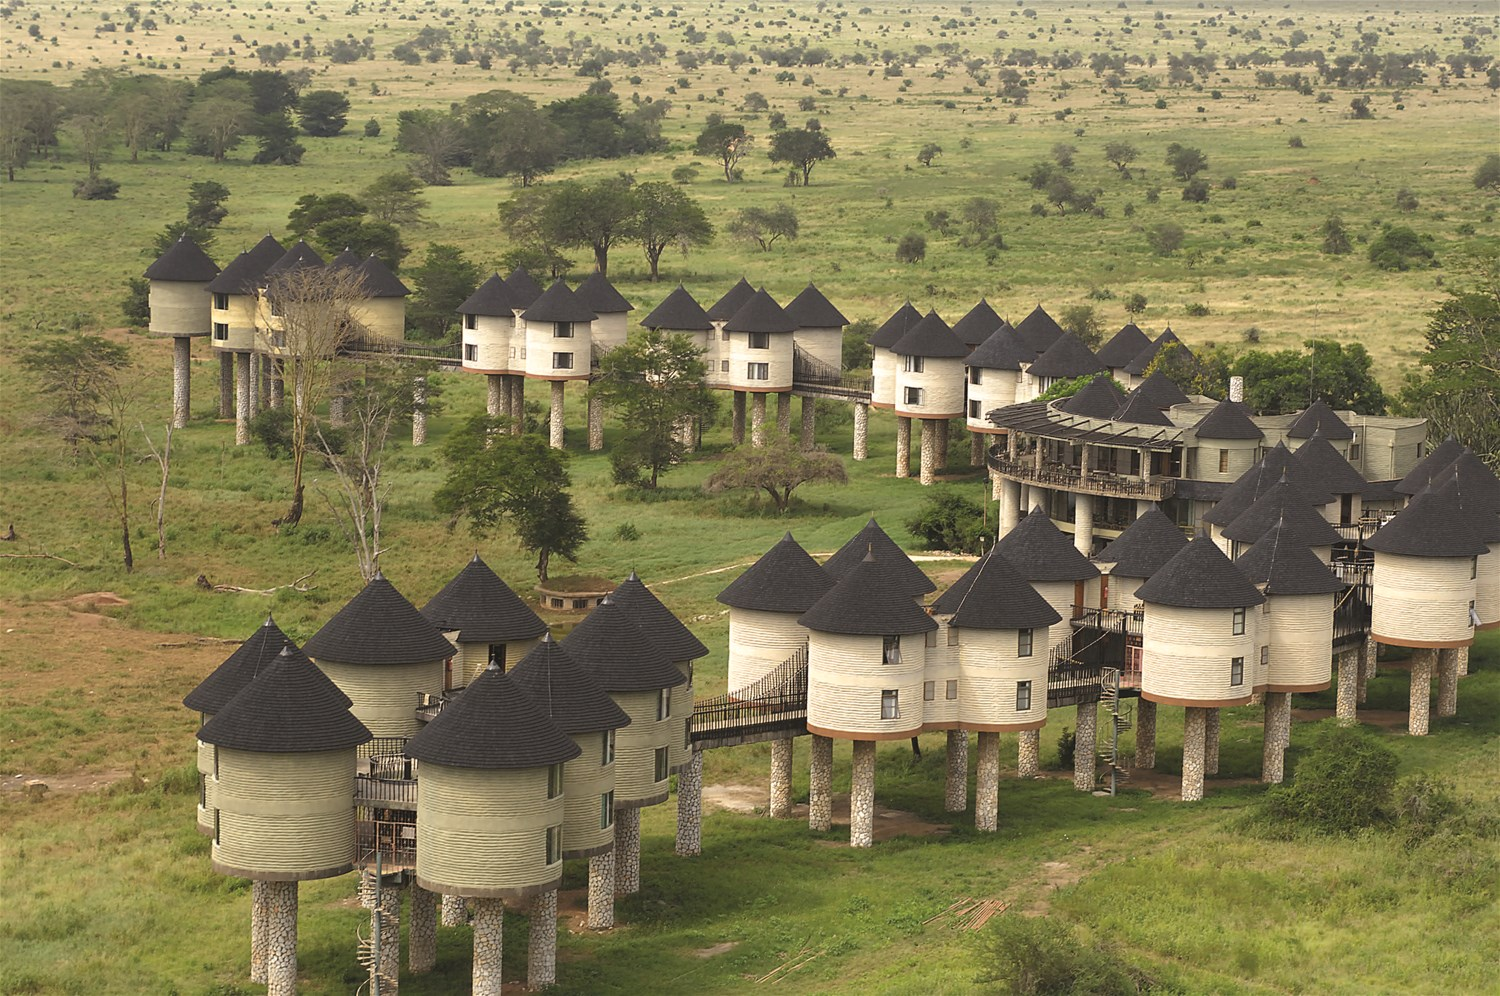 Sarova salt lick safari